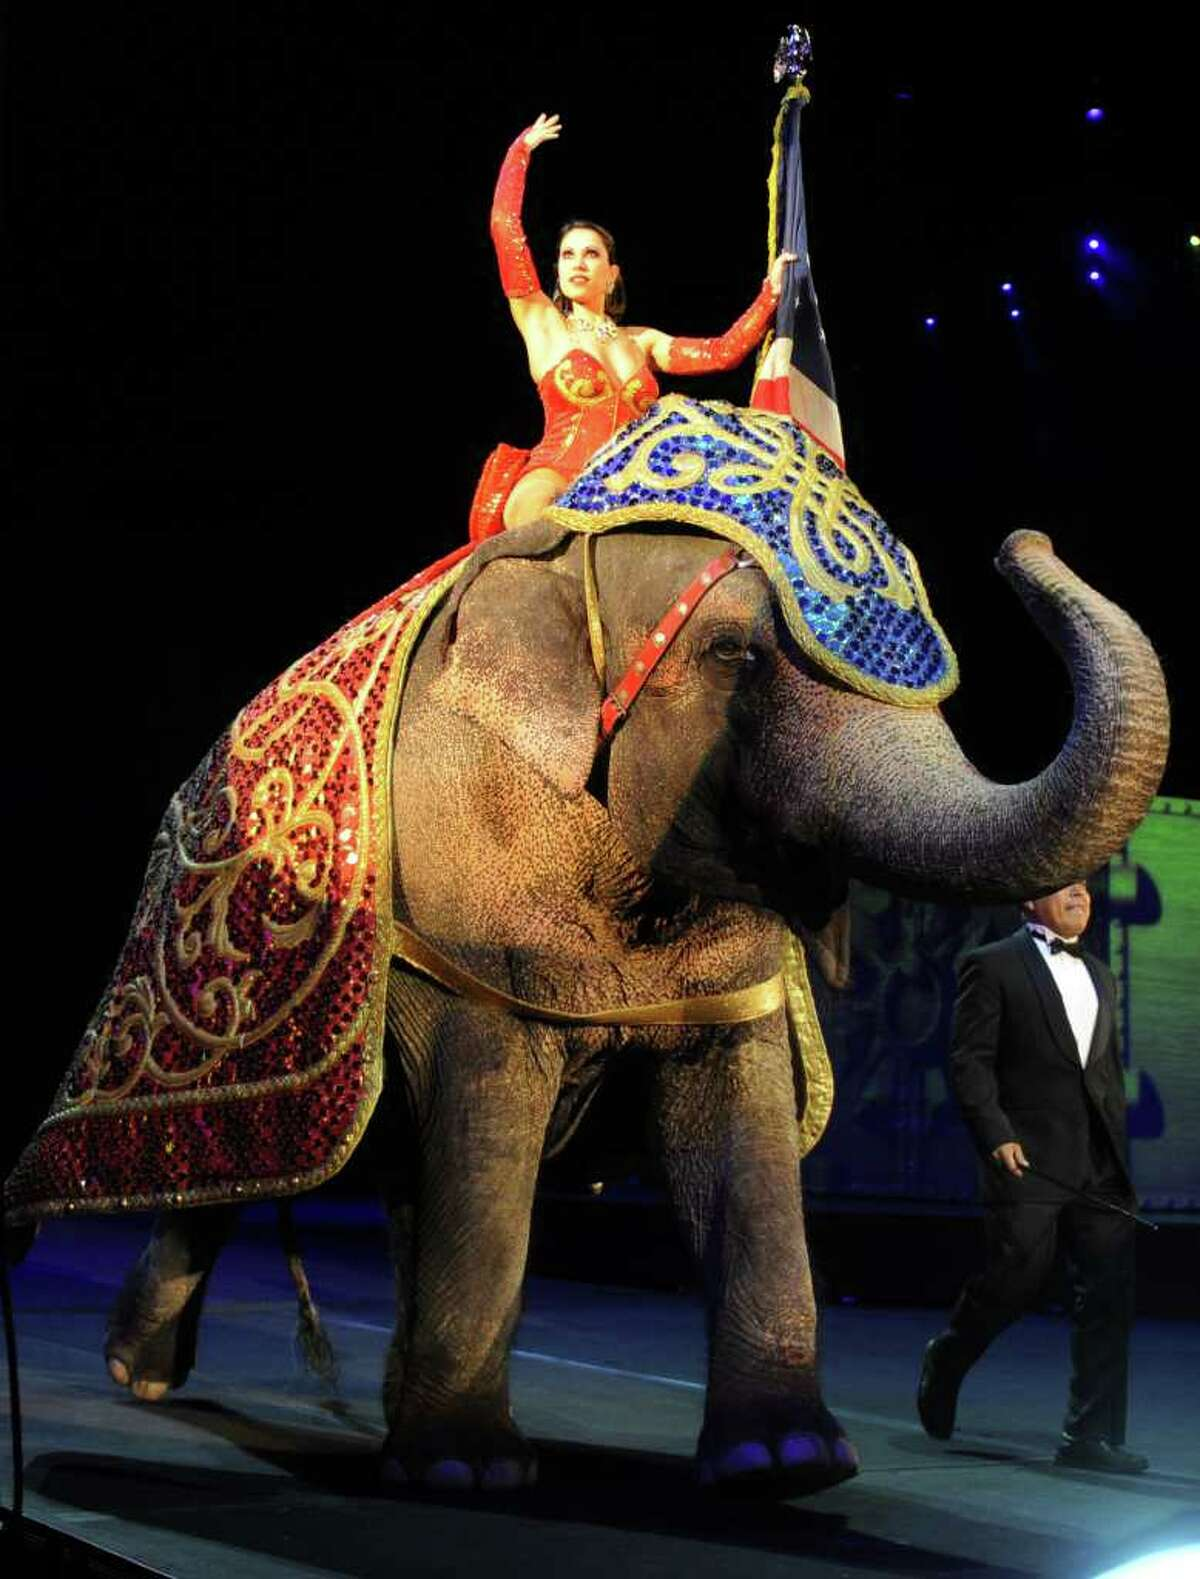 An elephant tours the arena during the national anthem played during the Ringling Brothers and Barnum and Baily circus at the Arena at Harbor Yard on Thursday, October 21, 2010.